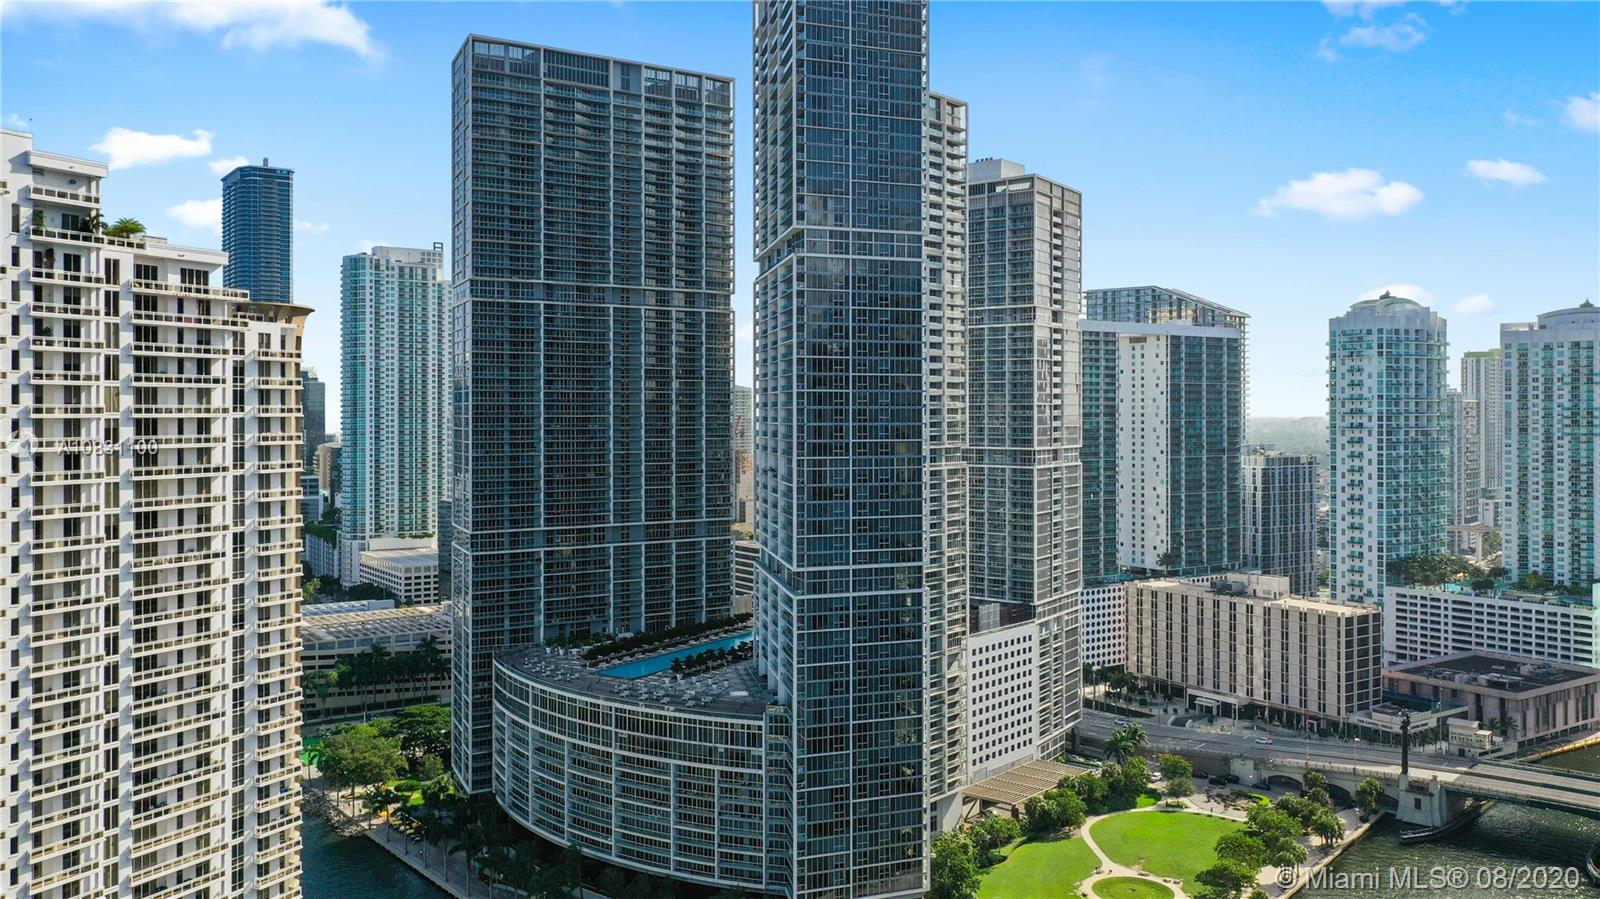 Icon Brickell 1 #1001 - 465 Brickell Ave #1001, Miami, FL 33131